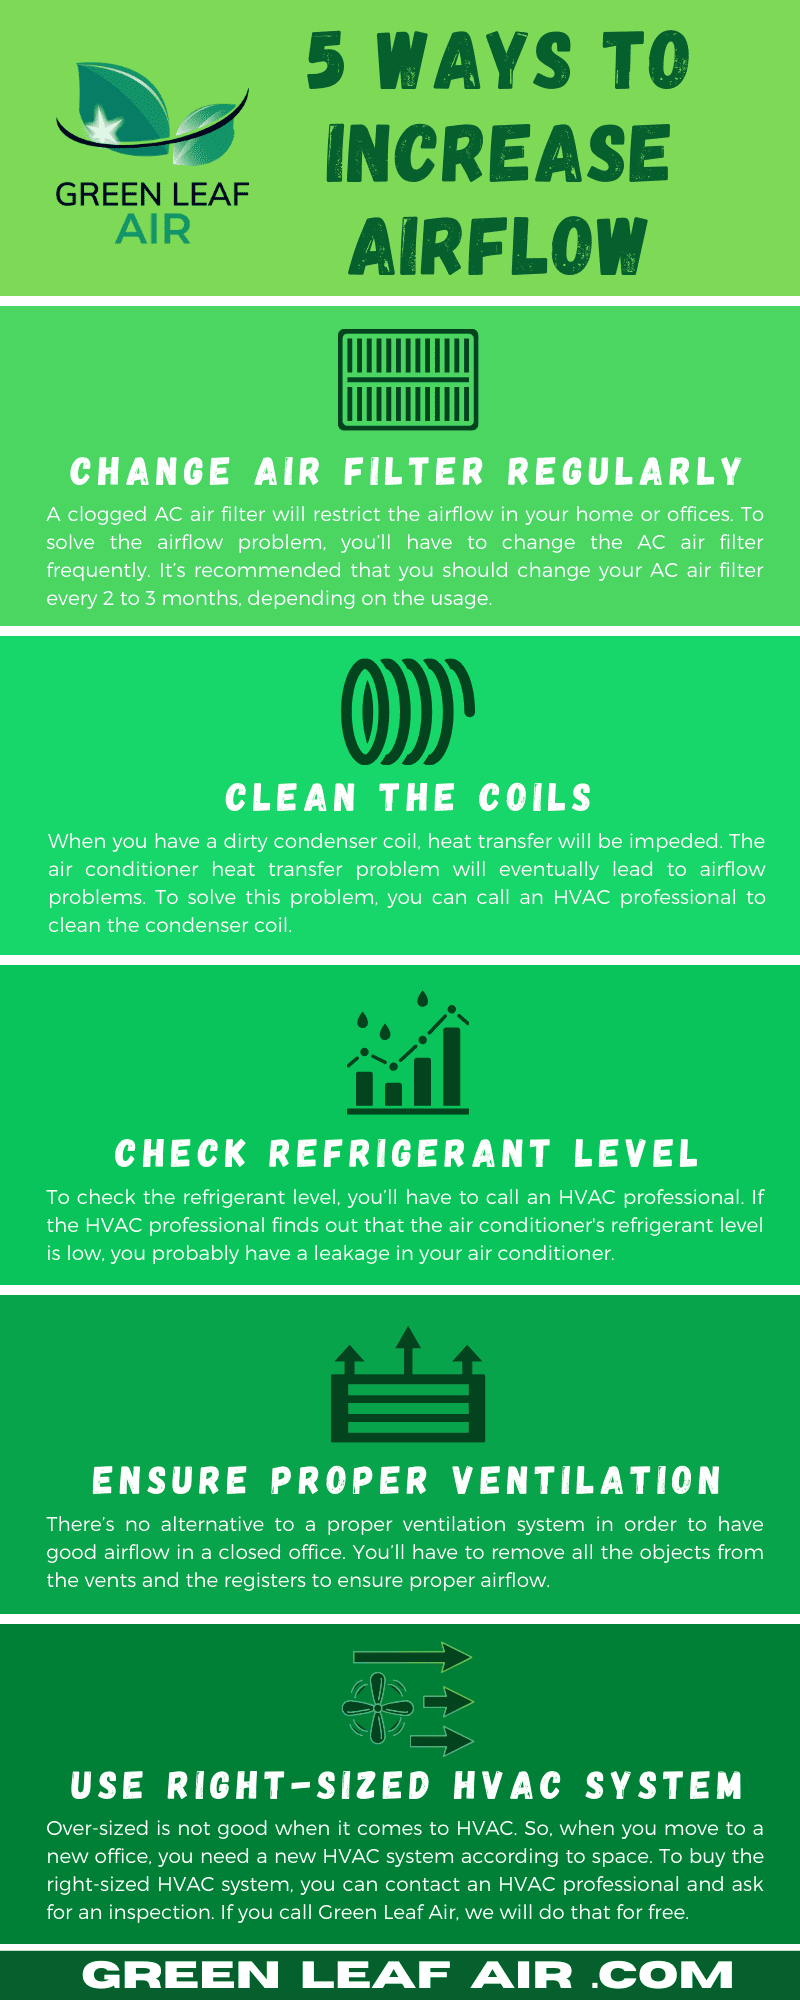 5 Ways to Increase Airflow [Infographic]